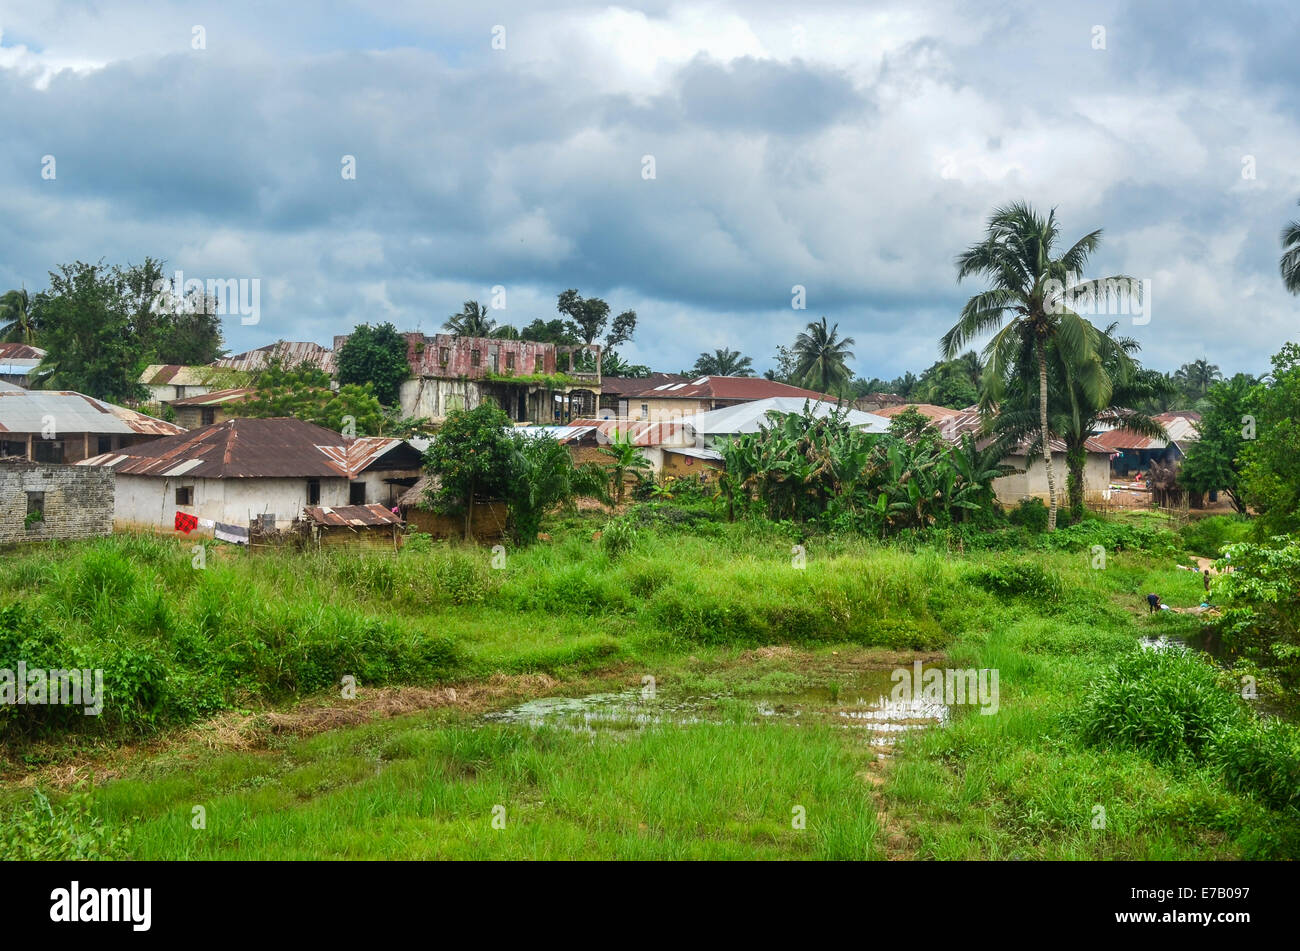 Small town of Potoru, by a river, in the east of Sierra Leone, not far from the border with Liberia - Stock Image